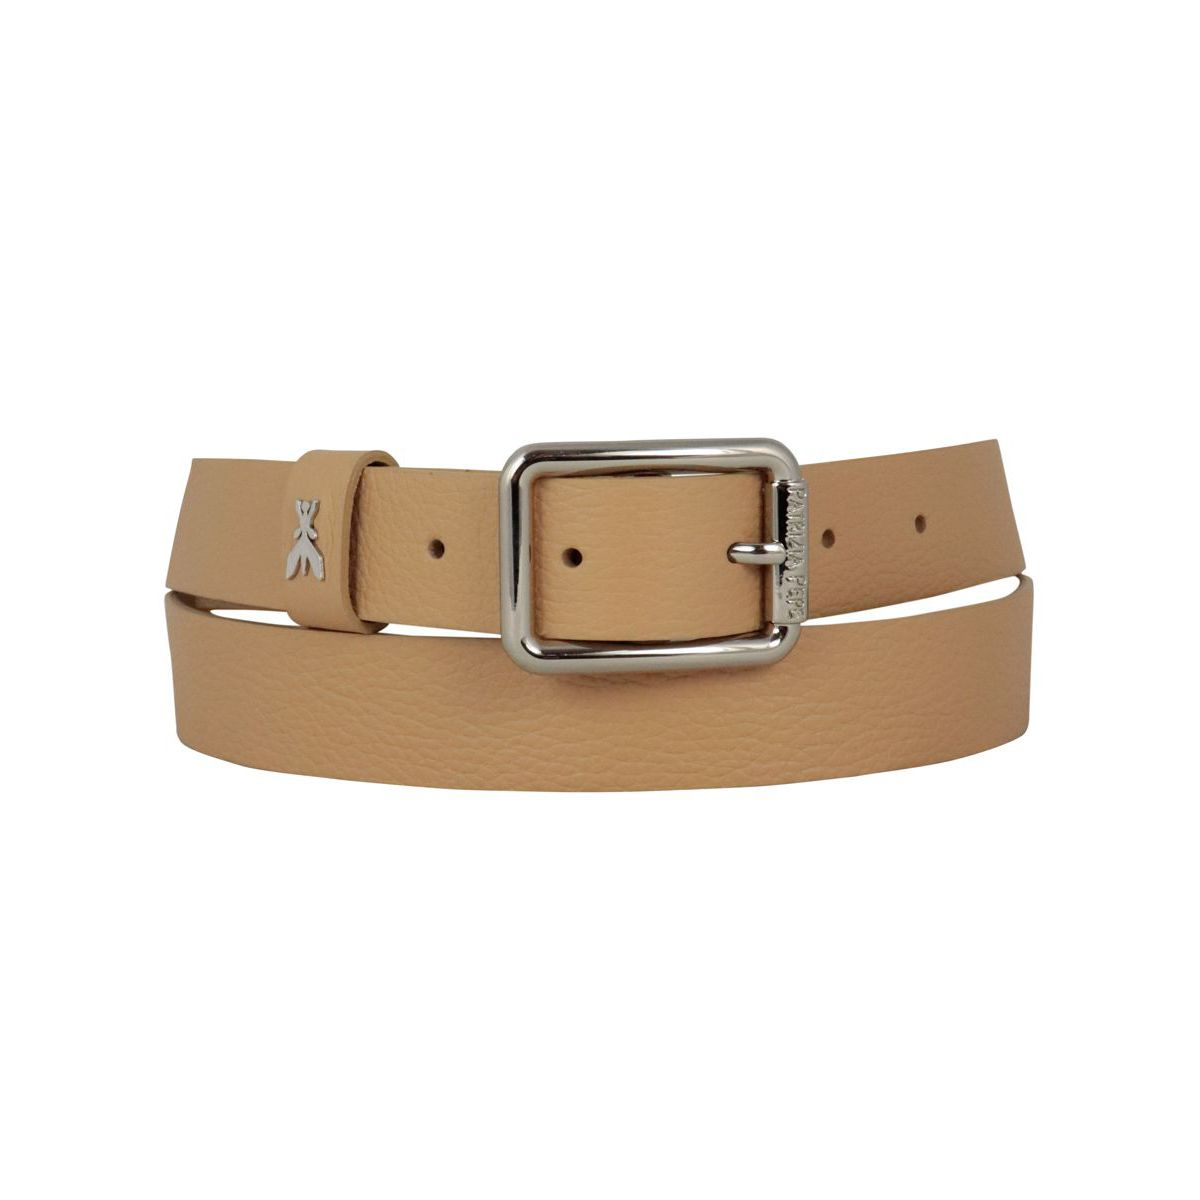 Leather belt with metal buckle and applied logo Beige Patrizia Pepe